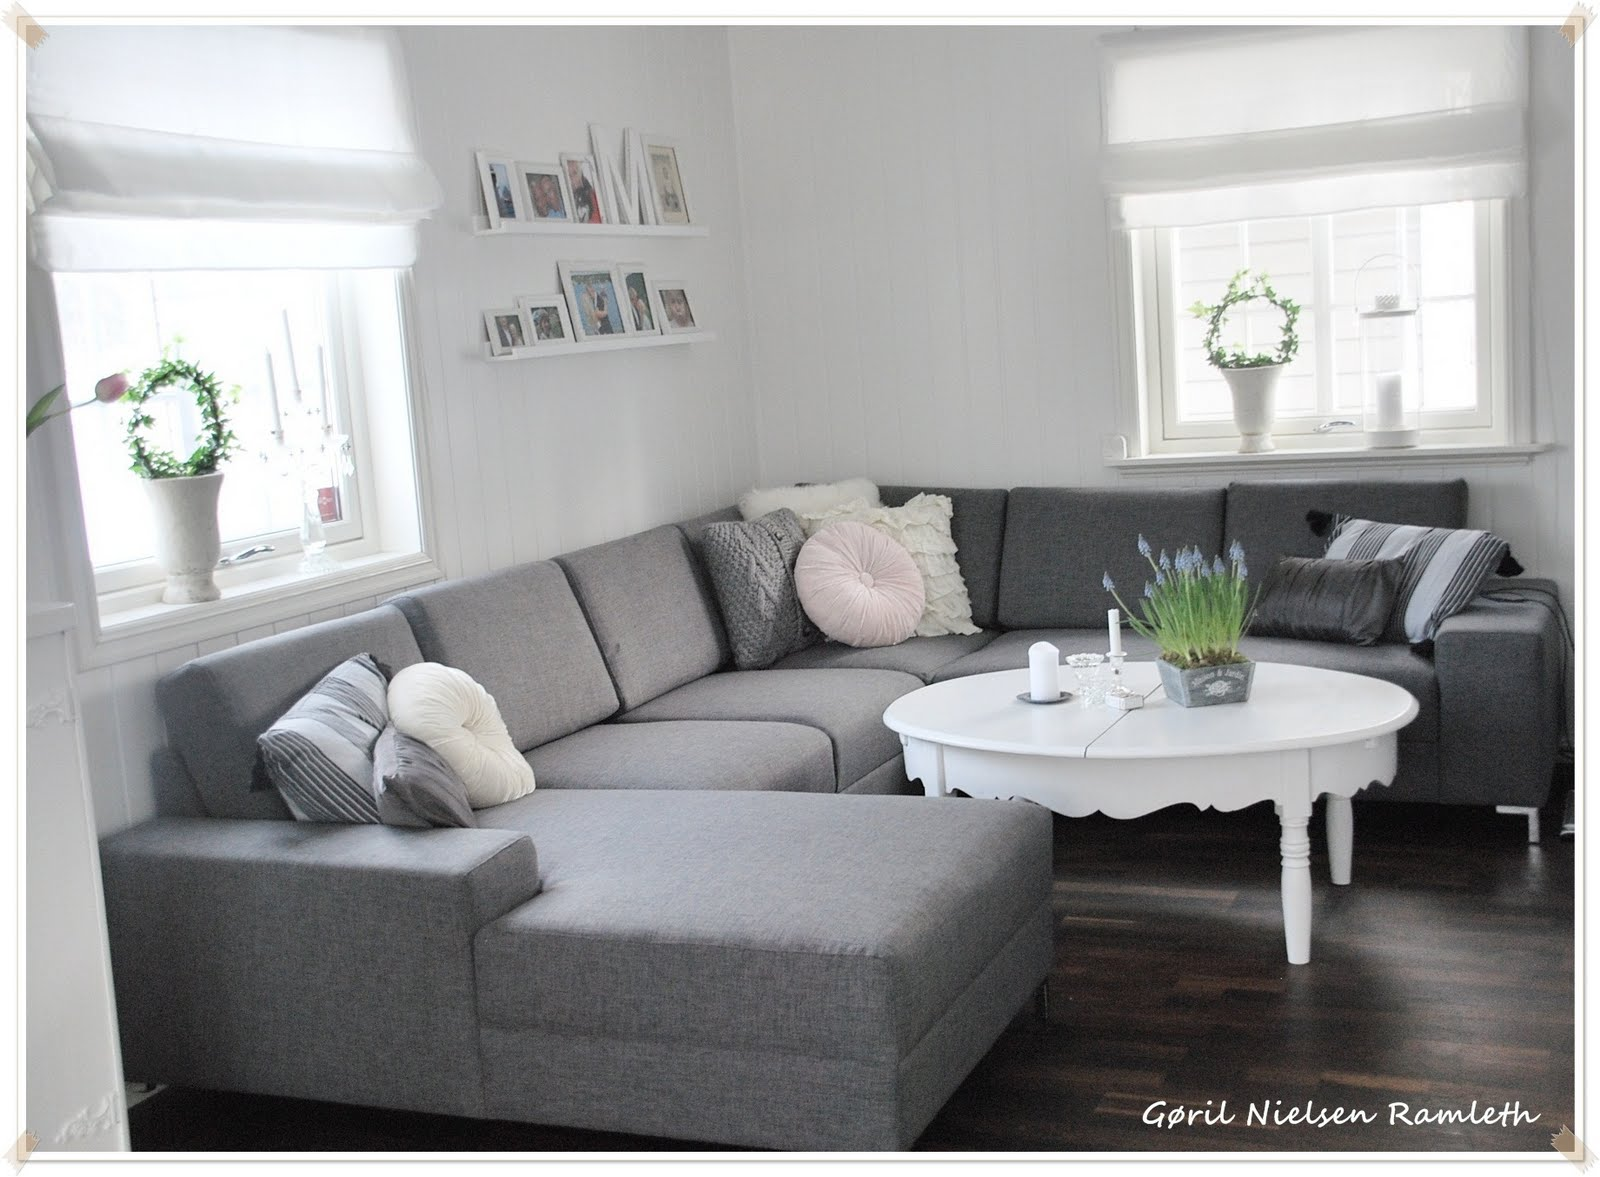 Stue Med To Sofaer: Boston brown and cushions on. Stue møbler ...